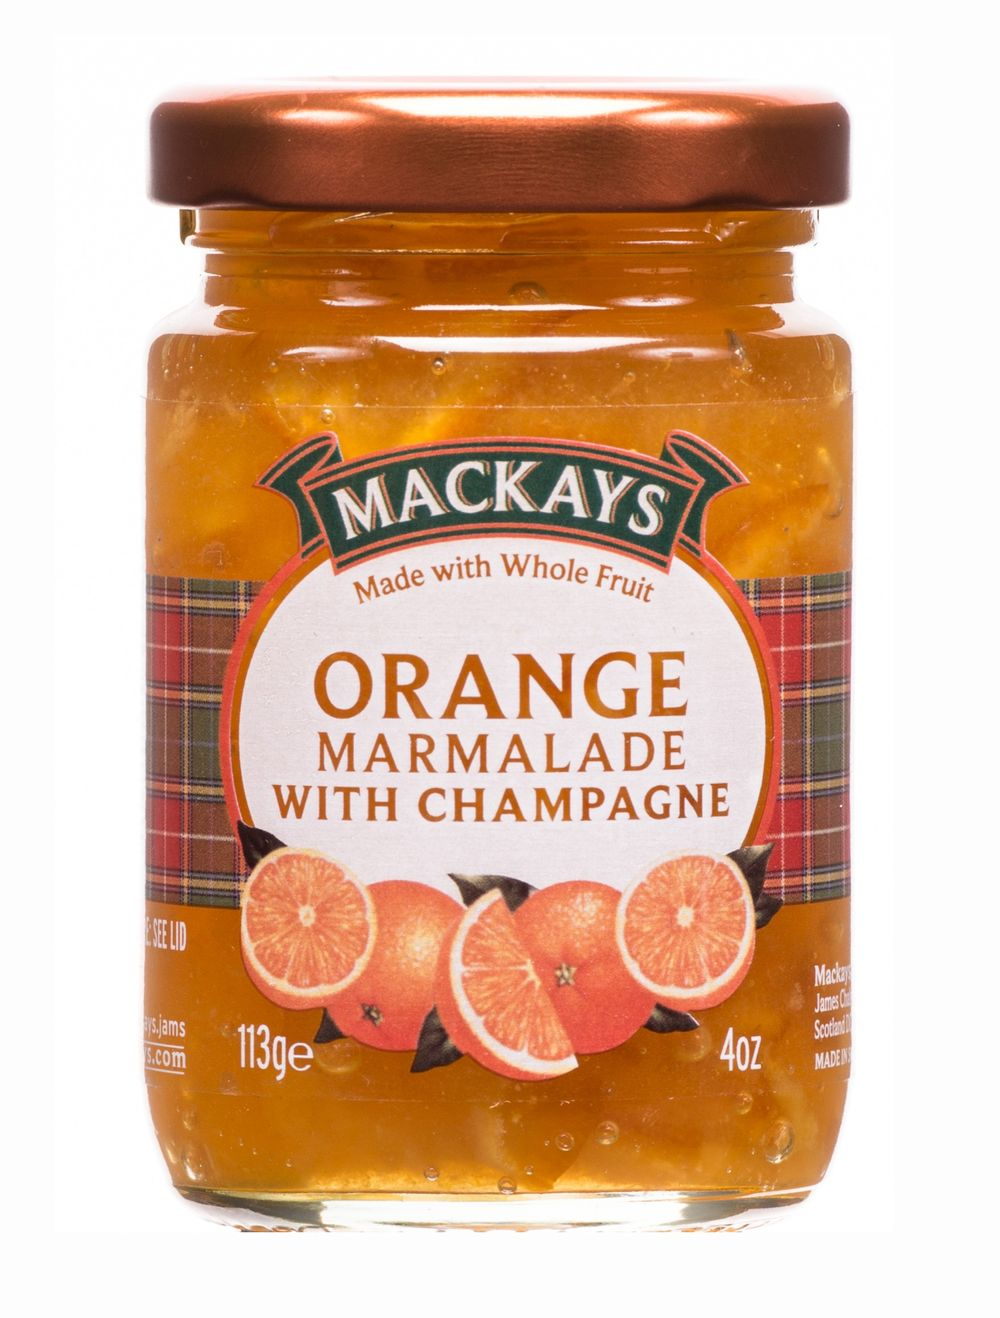 Orange Marmalade with Champagne